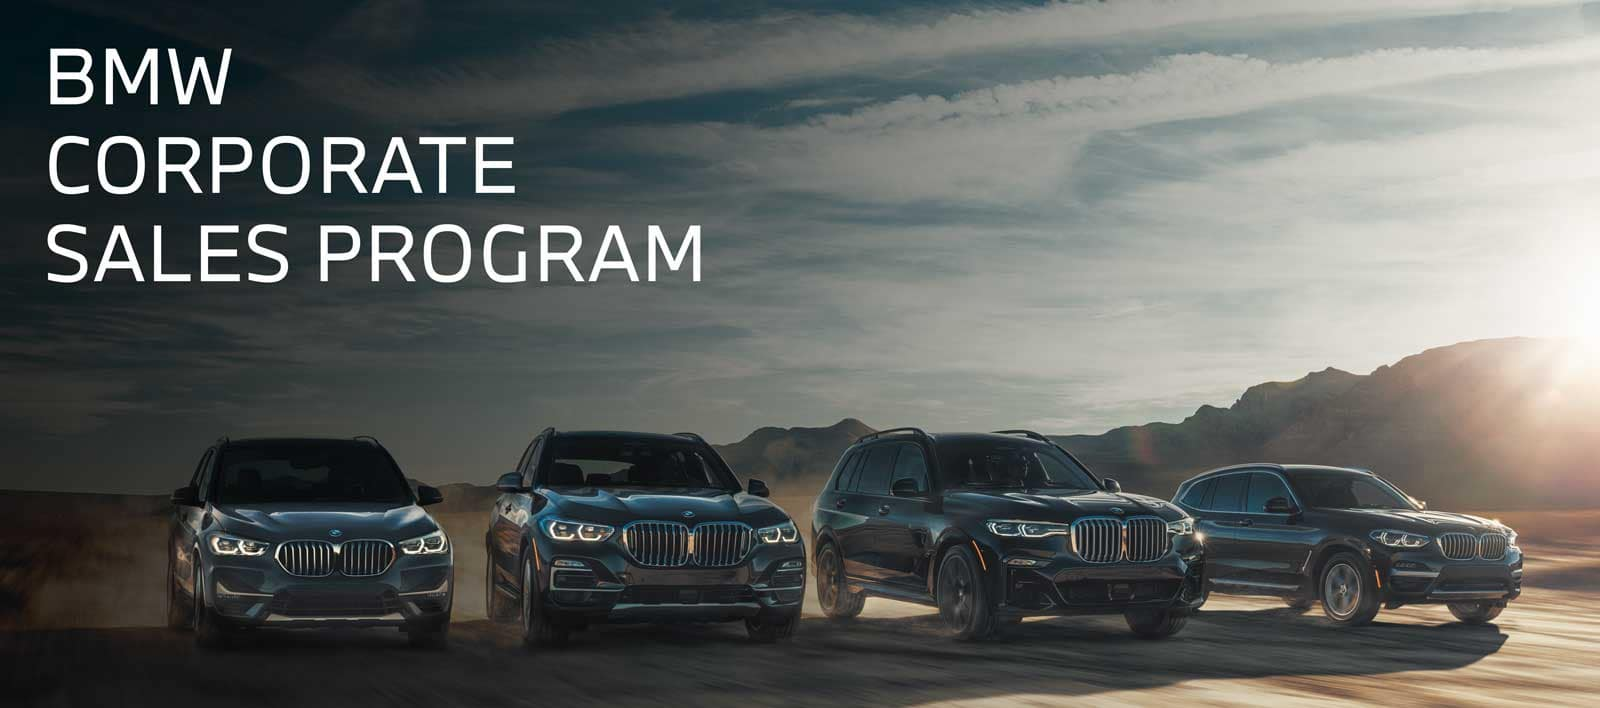 BMW corporate sales program